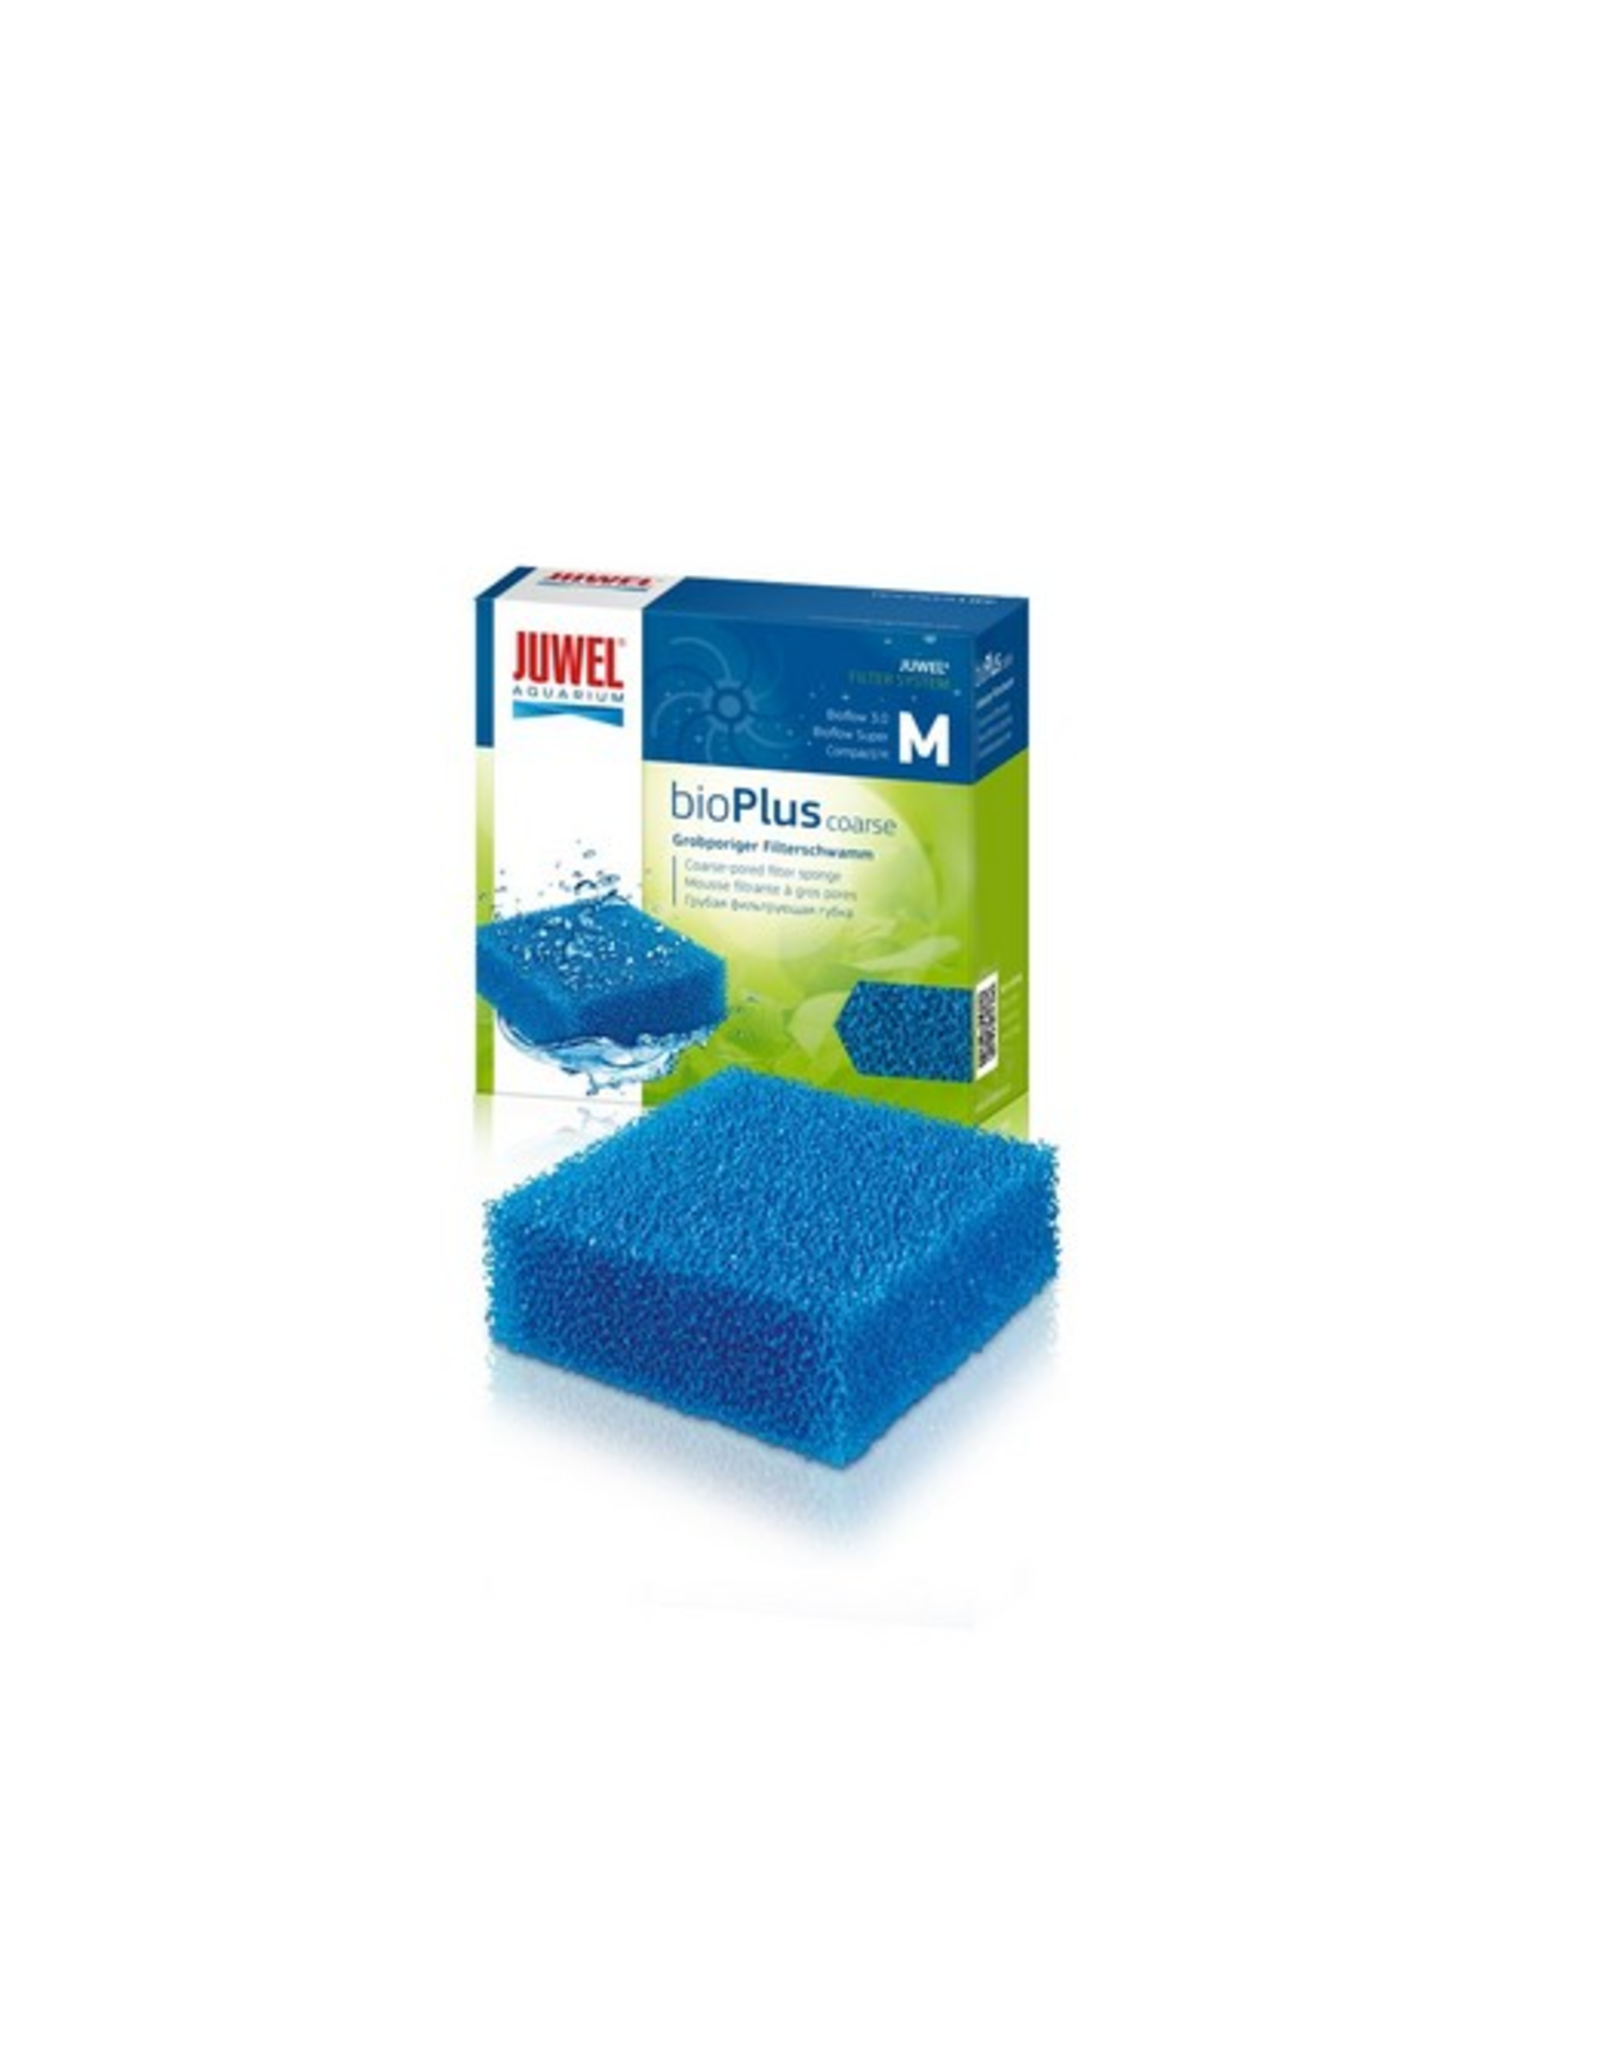 Juwel Juwel BioPlus Coarse Filter Sponge Medium